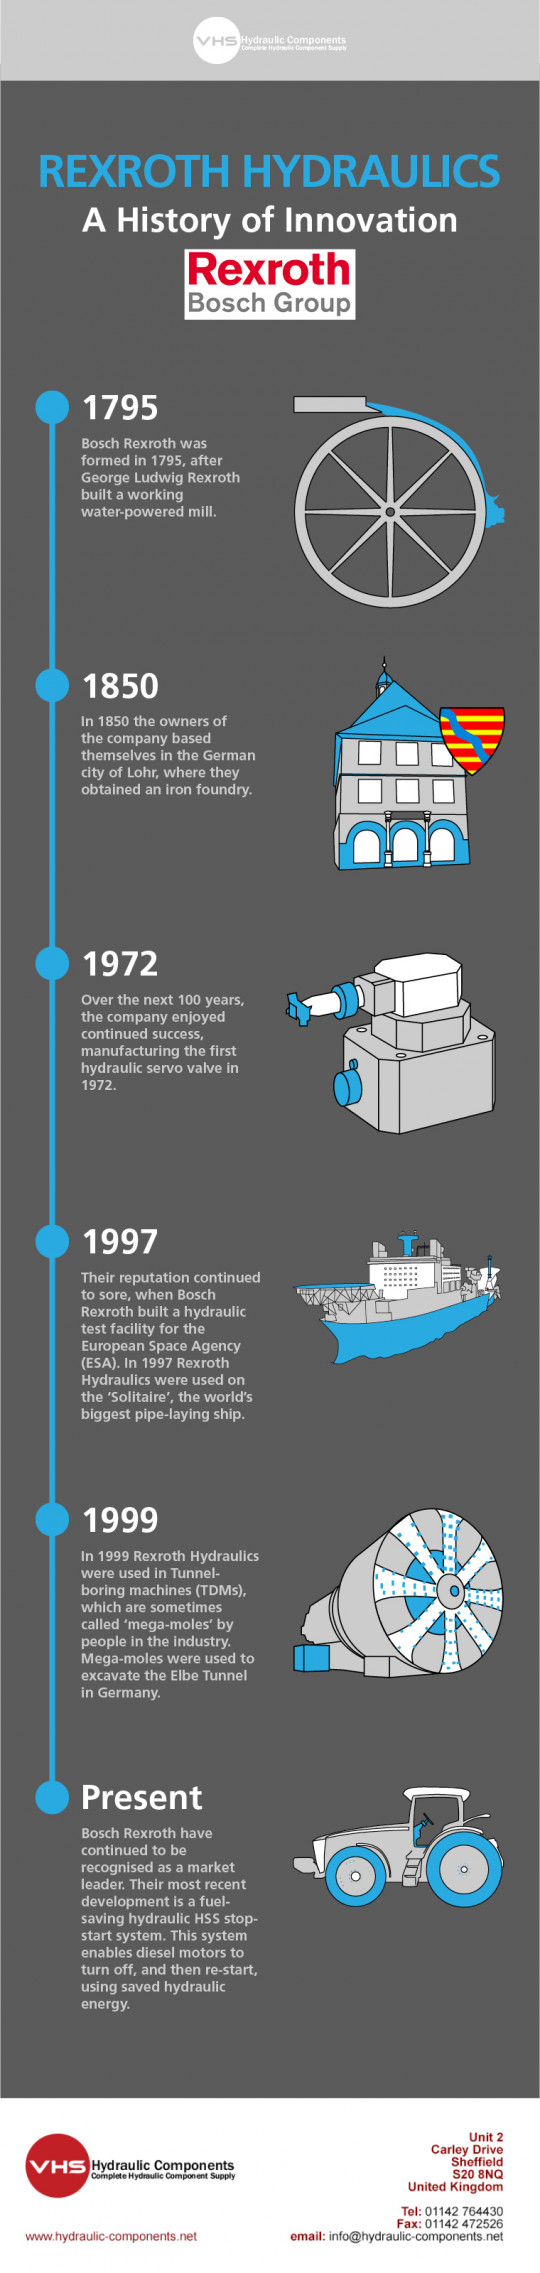 Rexroth Hydraulics: A History of Innovation